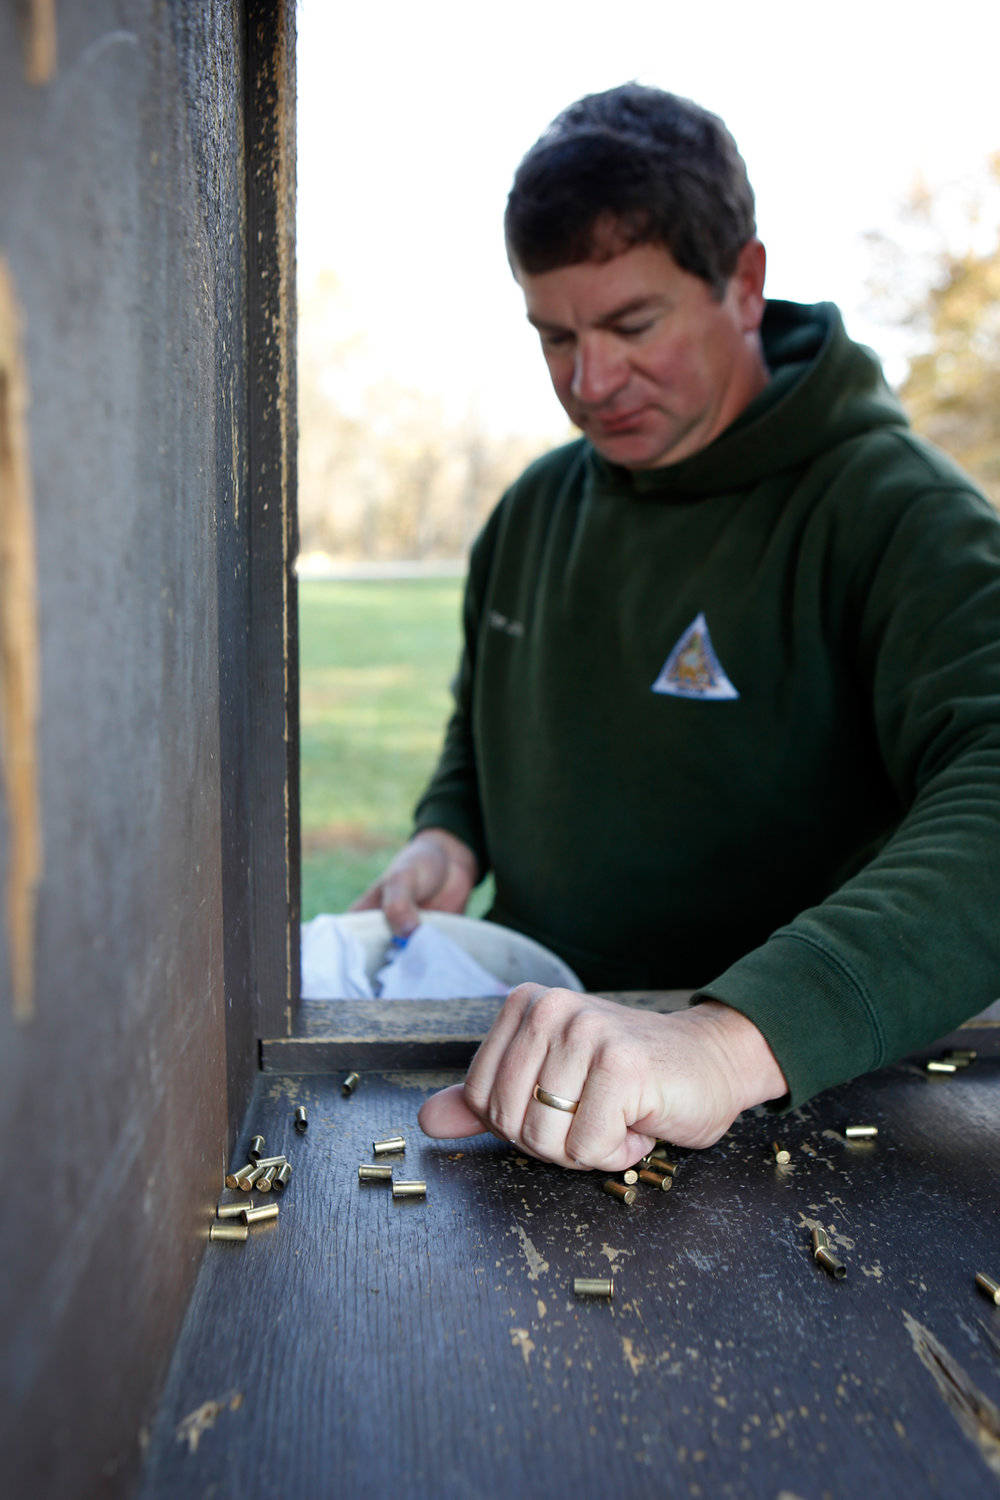 At Rocky Fork Lakes Conservation Area, James is responsible for keeping the shooting range clean of spent casings and destroyed targets. He will occasionally run into scrappers who collect brass casings from the area, which he praises because the metal can be recycled. The range is significantly more busy leading up to and during hunting seasons.